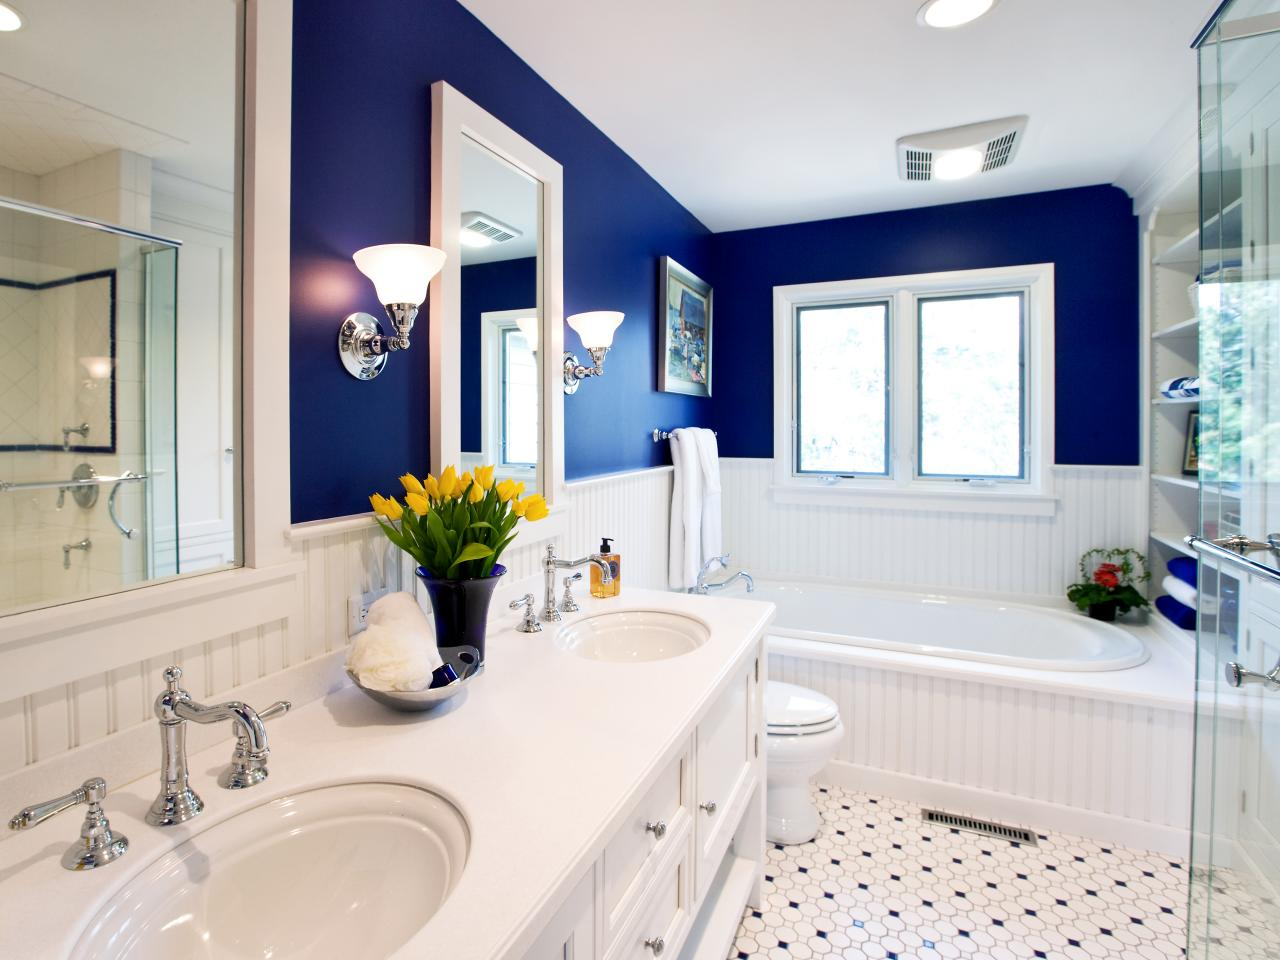 Home bathroom designs - Traditional Bathroom Designs